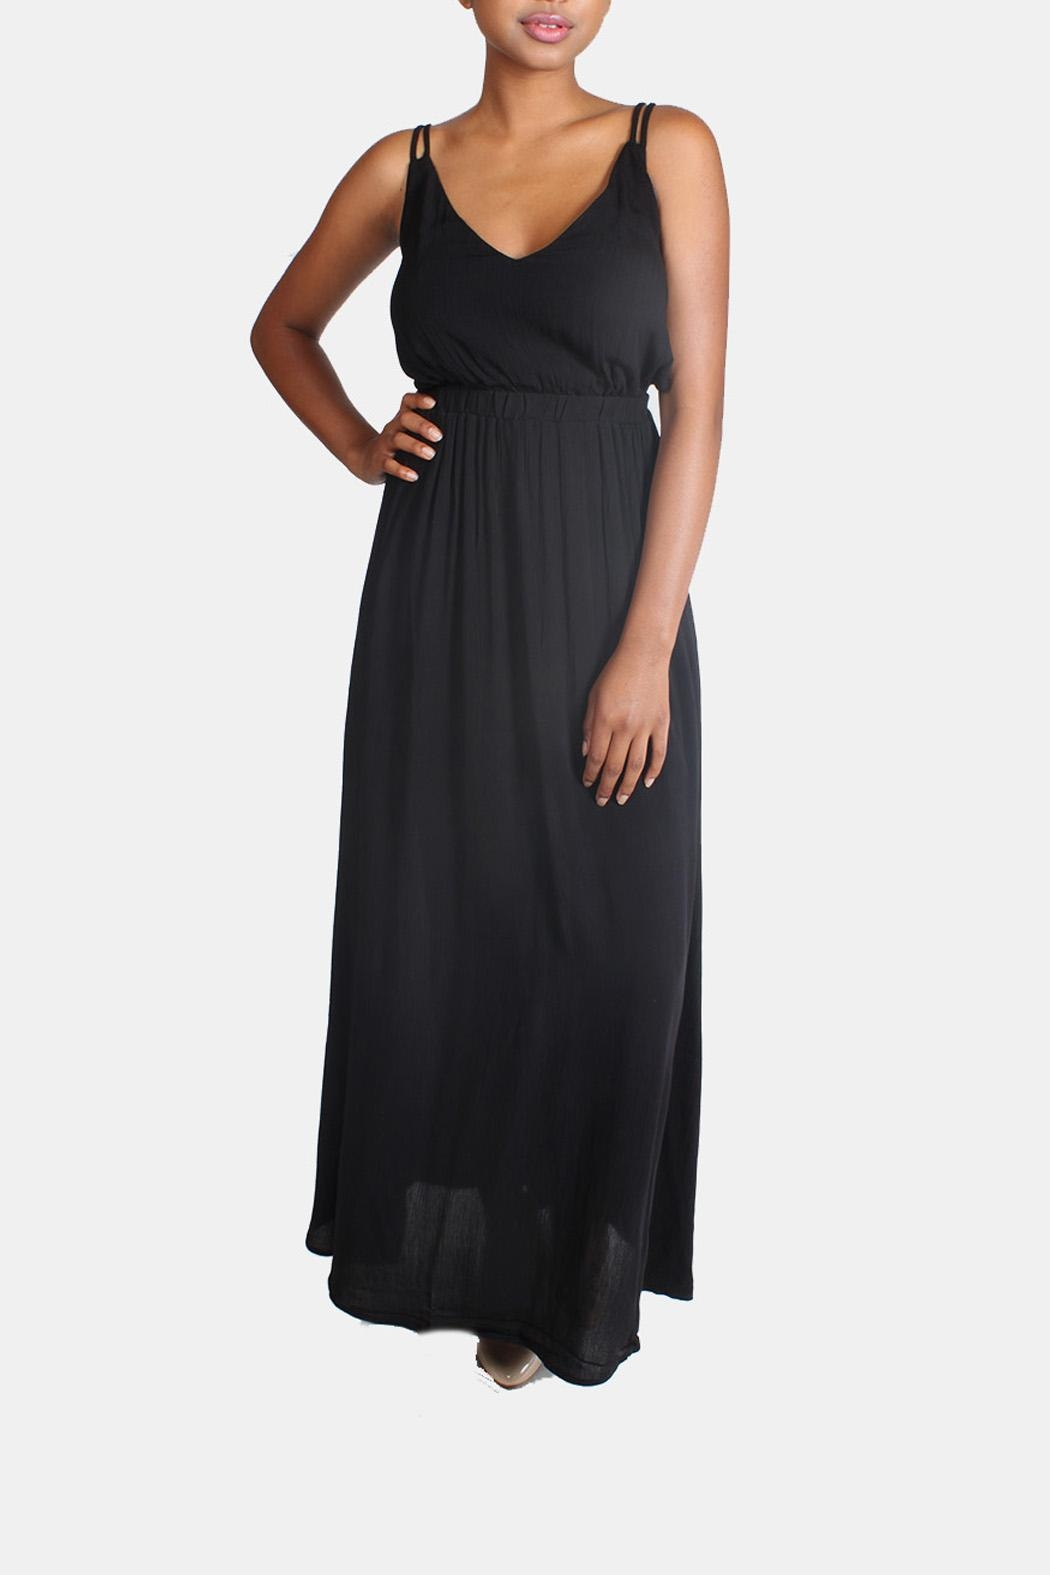 rokoko Tie Back Maxi Dress - Side Cropped Image